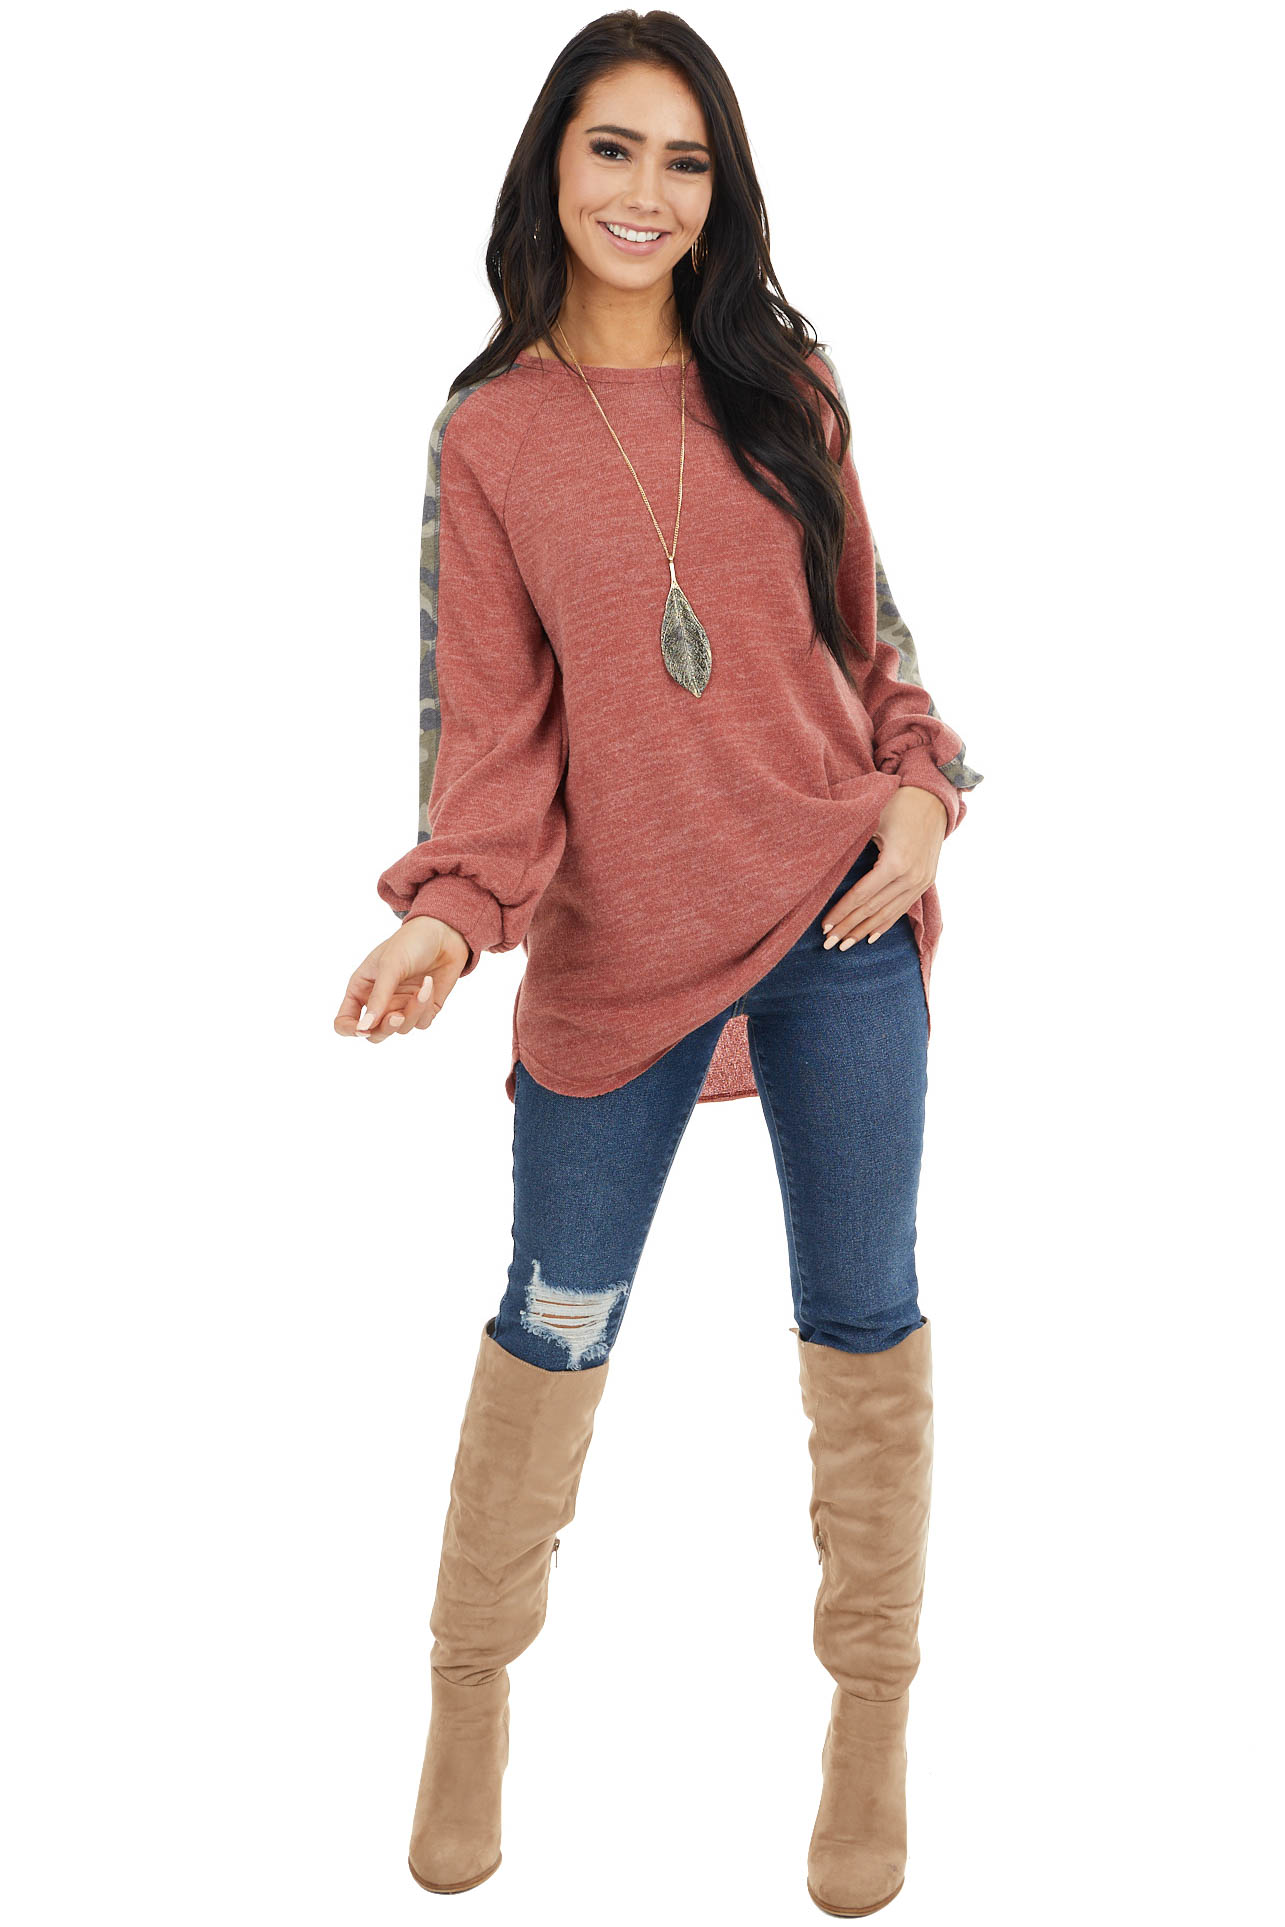 Ginger Two Tone Knit Top with Camo Print Contrasts